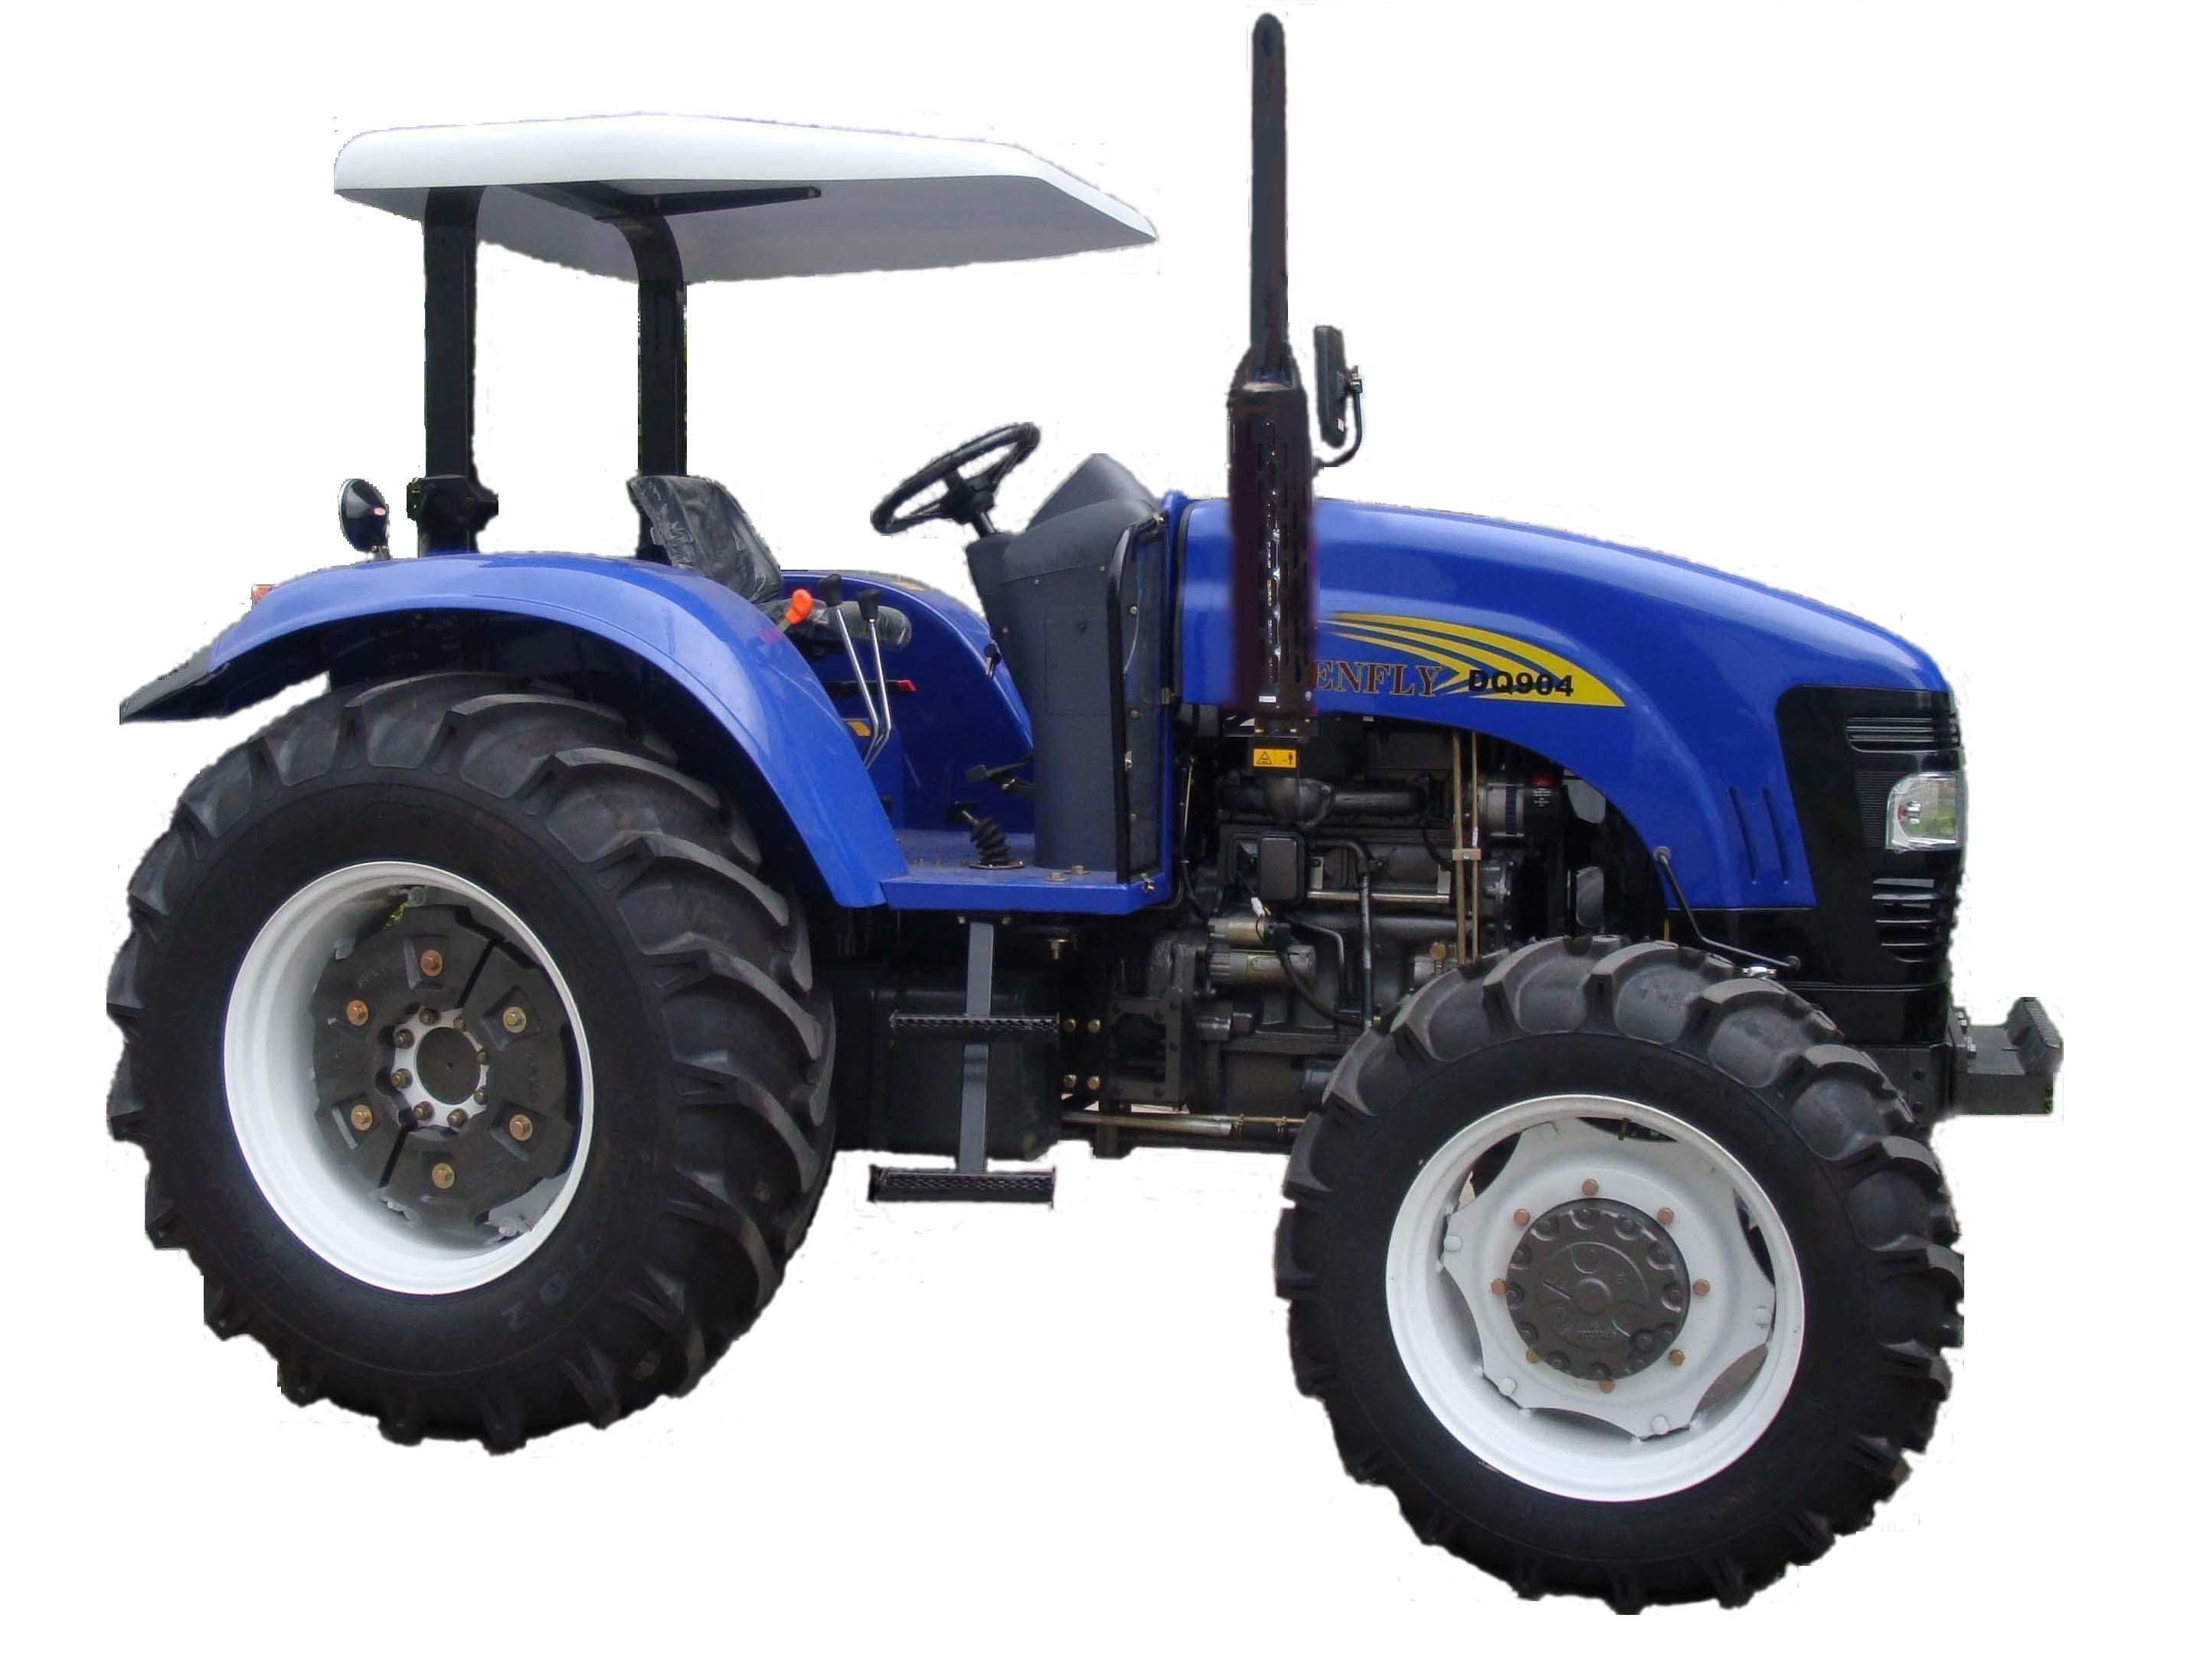 Hubei Tractor Parts : The information is not available right now